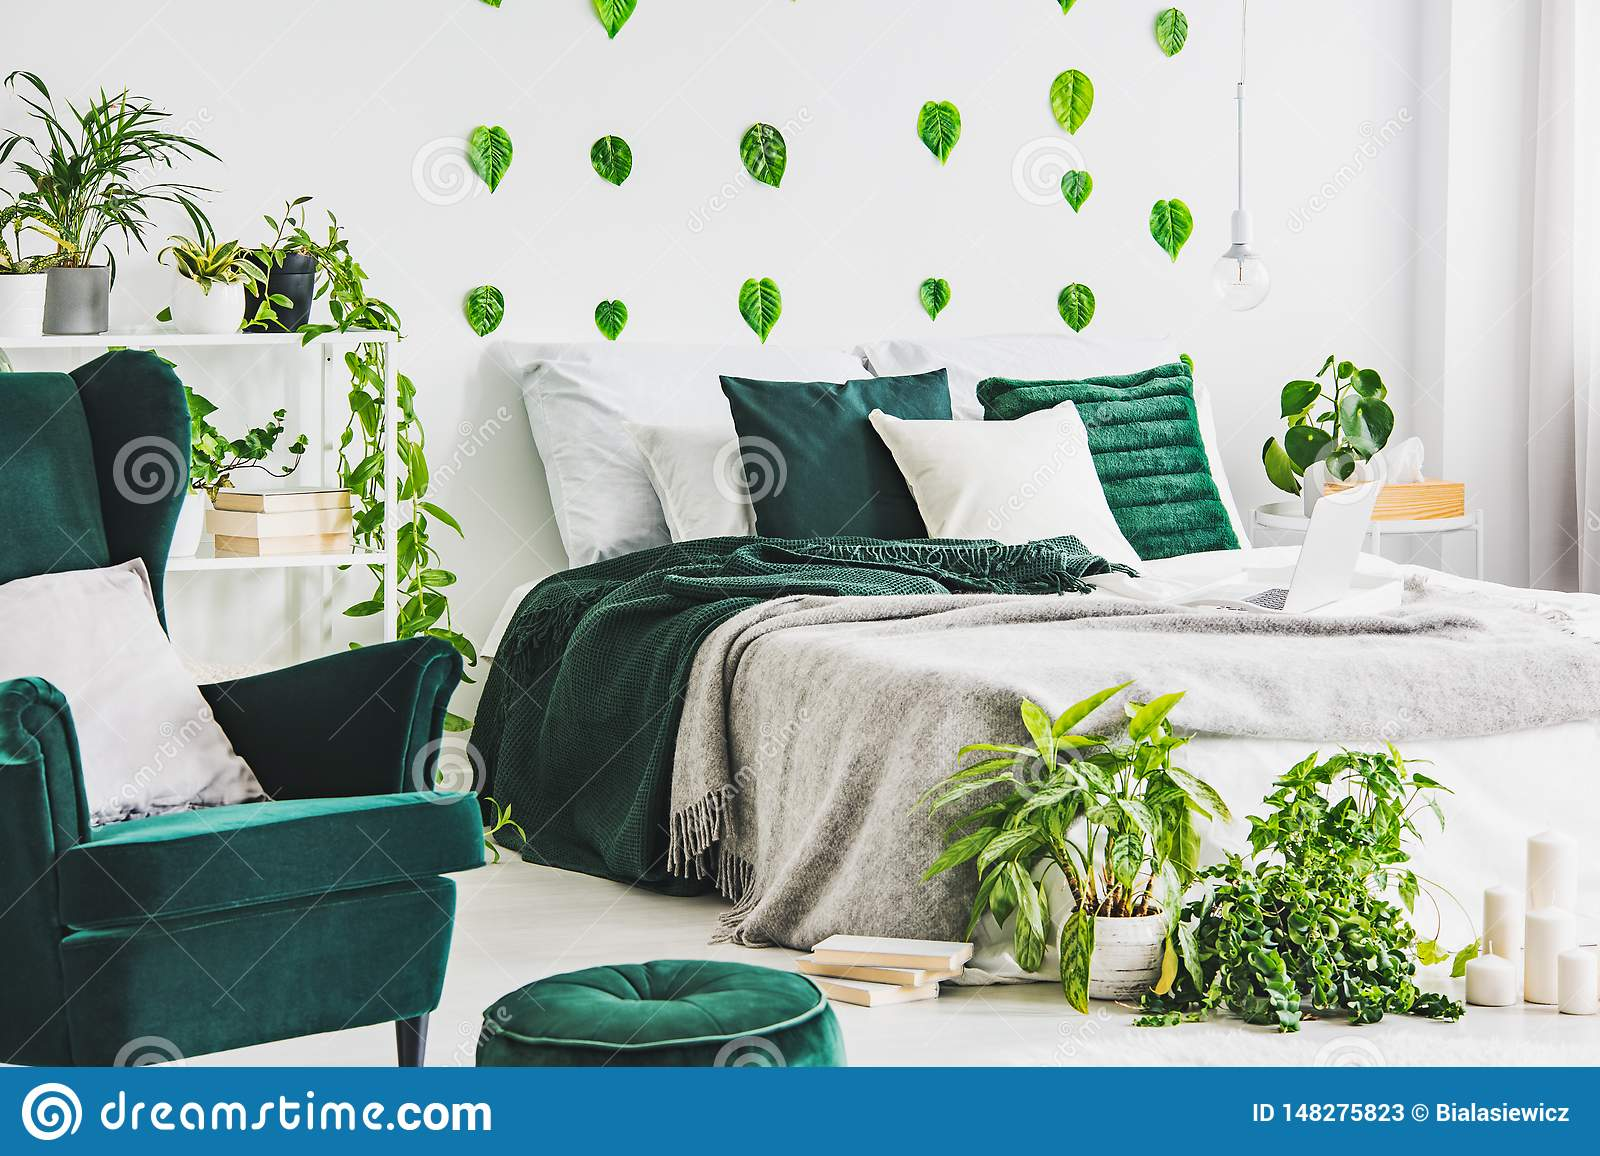 White bedroom interior with king size bed with grey nd emerald bedding, urban jungle and green leaf on the wall